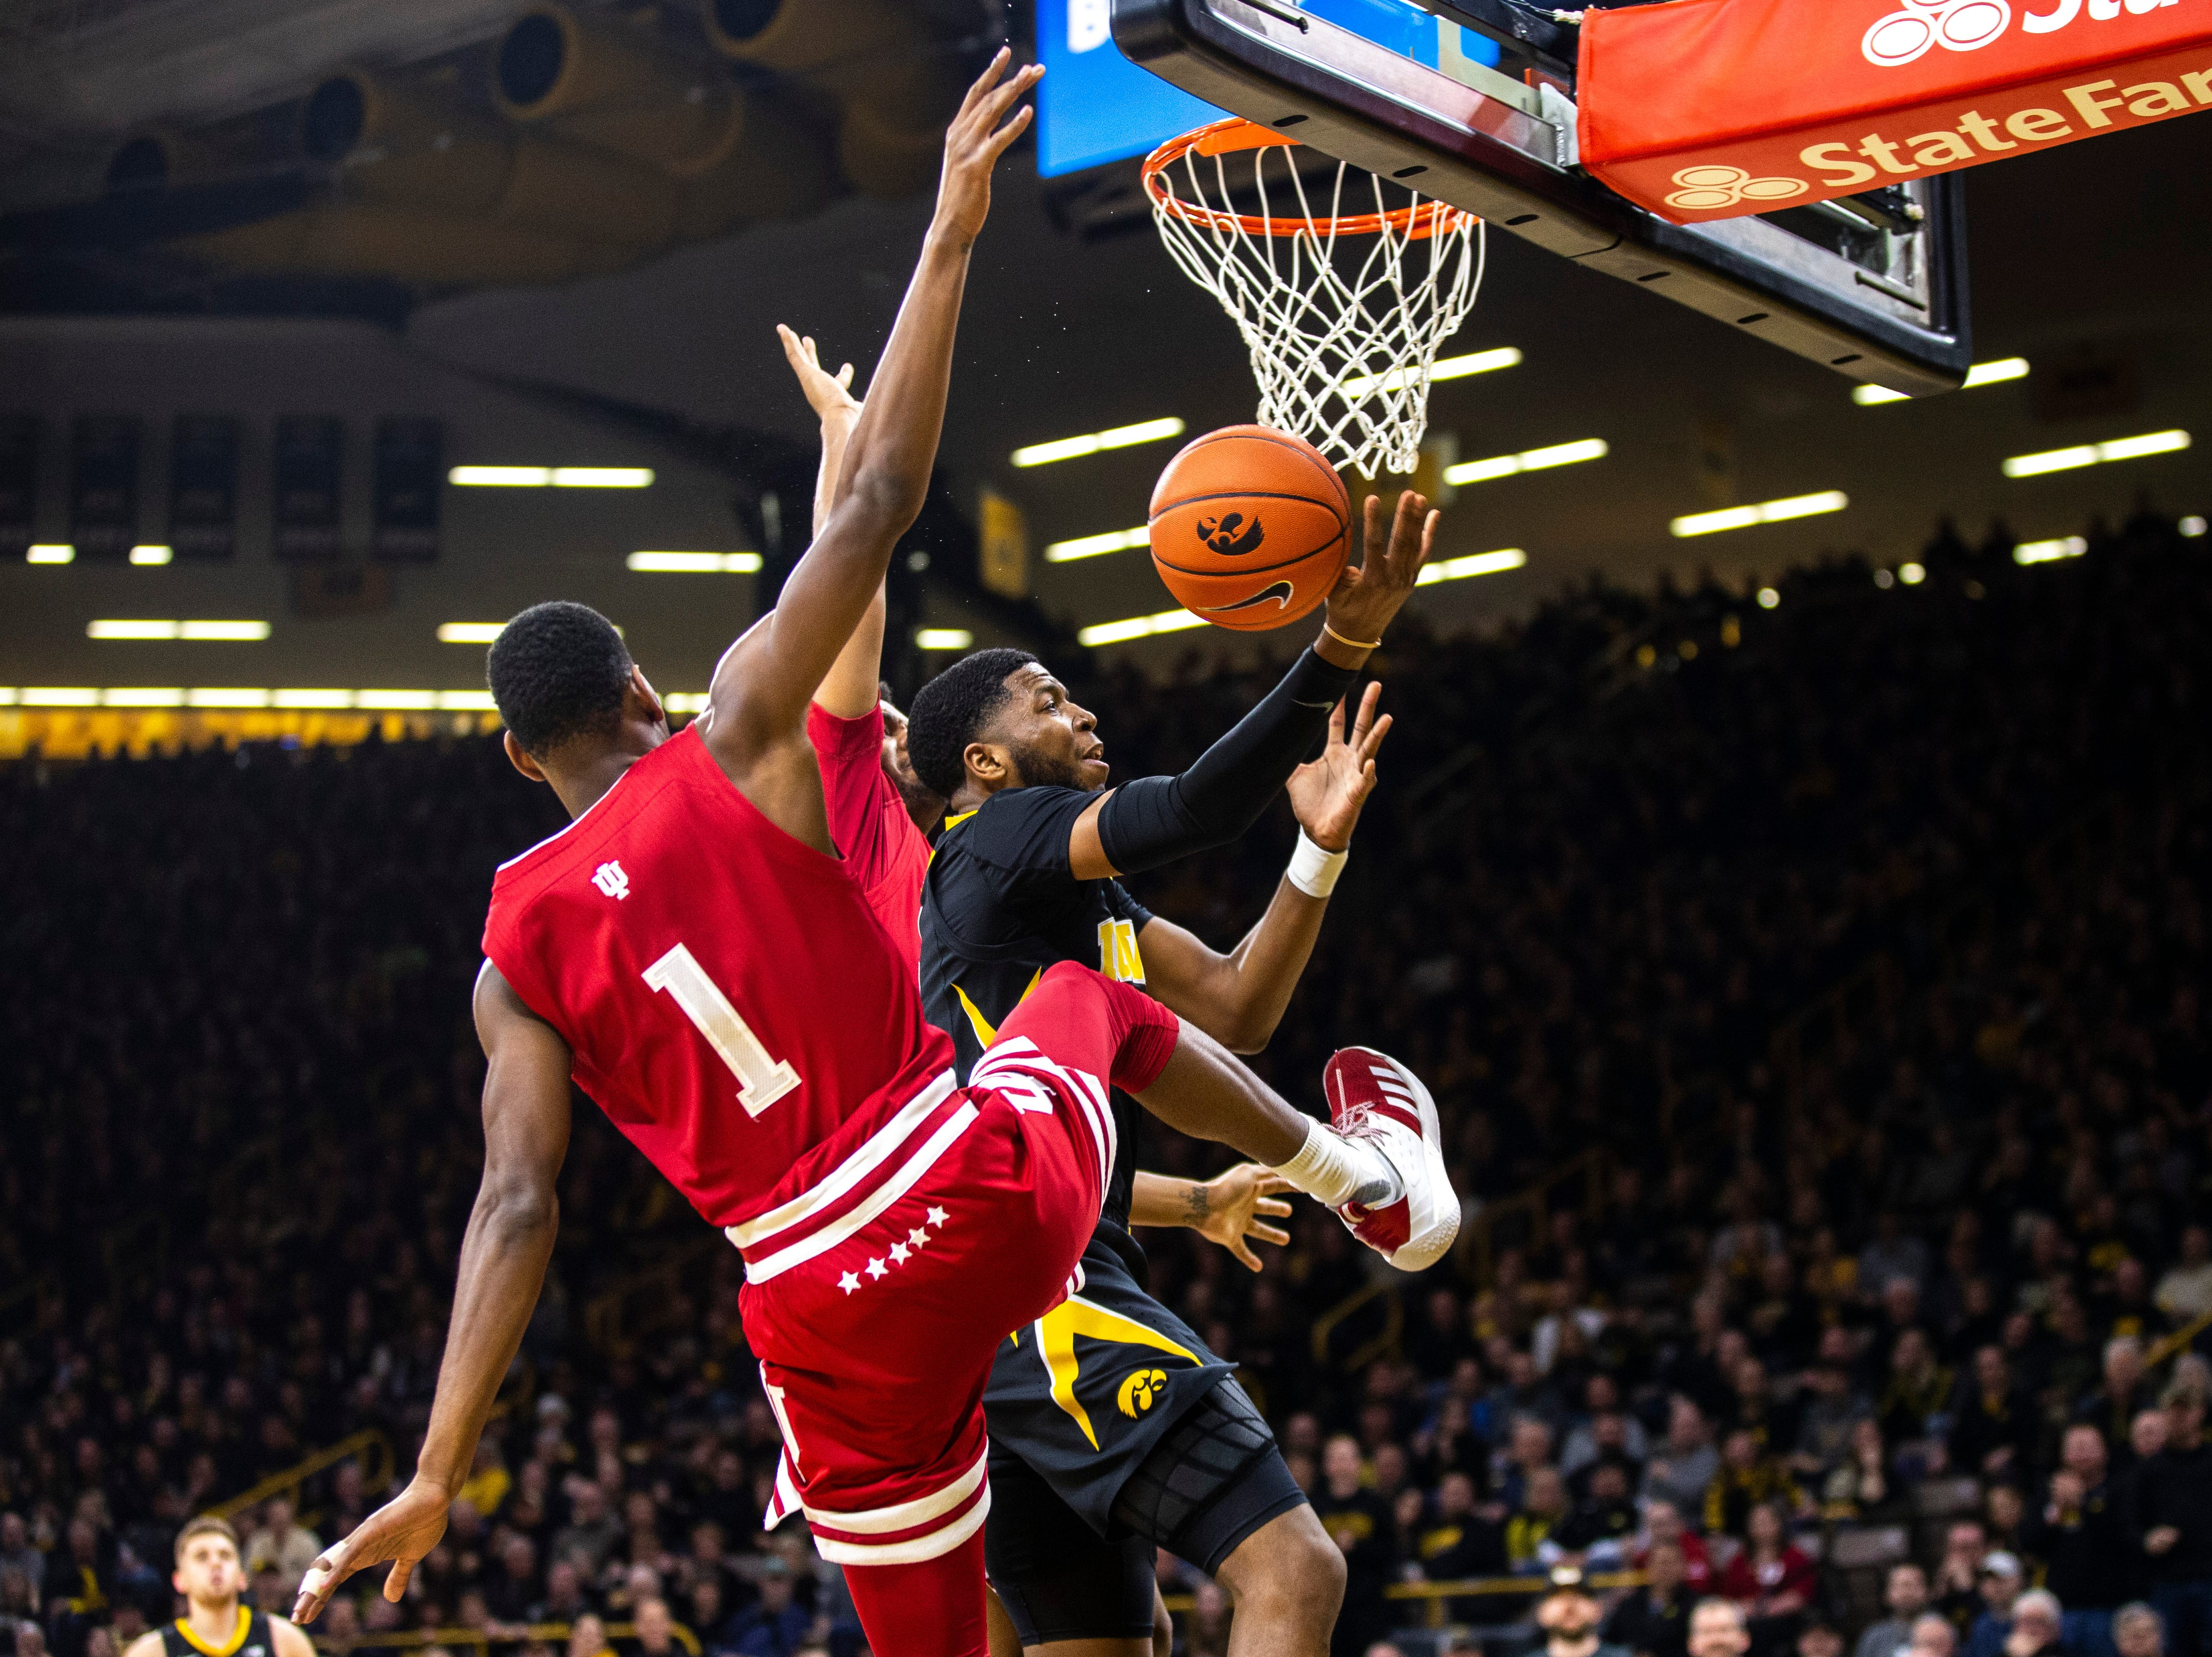 Iowa guard Isaiah Moss (4) drives to the basket while Indiana guard Aljami Durham (1) defends during a NCAA Big Ten Conference men's basketball game on Friday, Feb. 22, 2019 at Carver-Hawkeye Arena in Iowa City, Iowa.